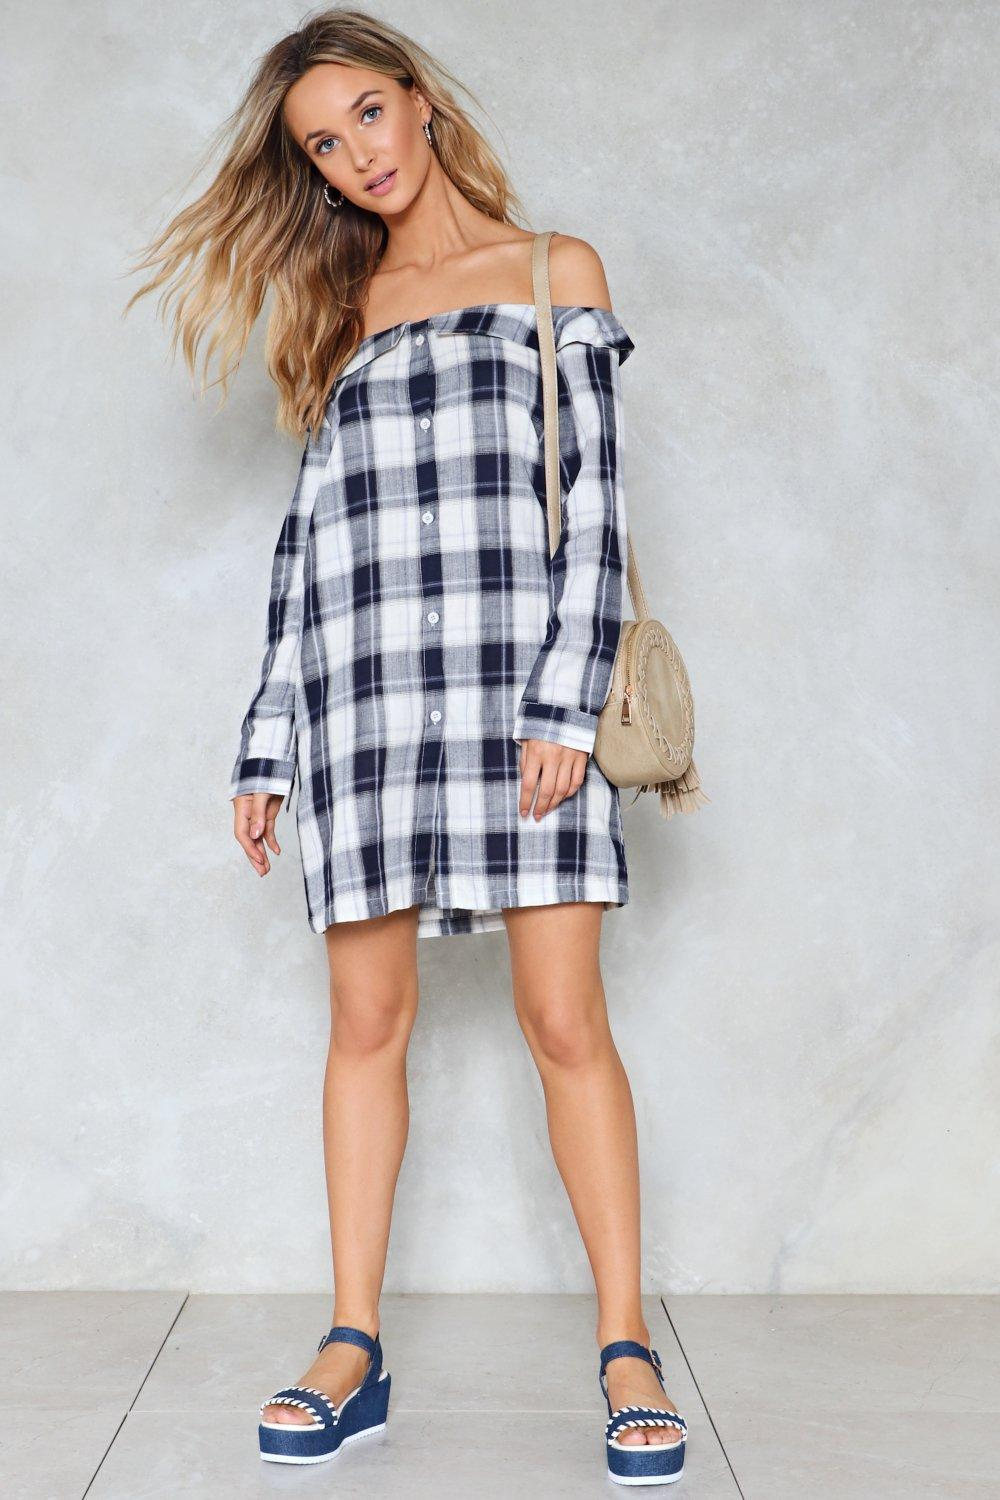 391ed28caa2f Womens Multi Plaid Influence Off-the-Shoulder Shirt Dress. Hover to zoom